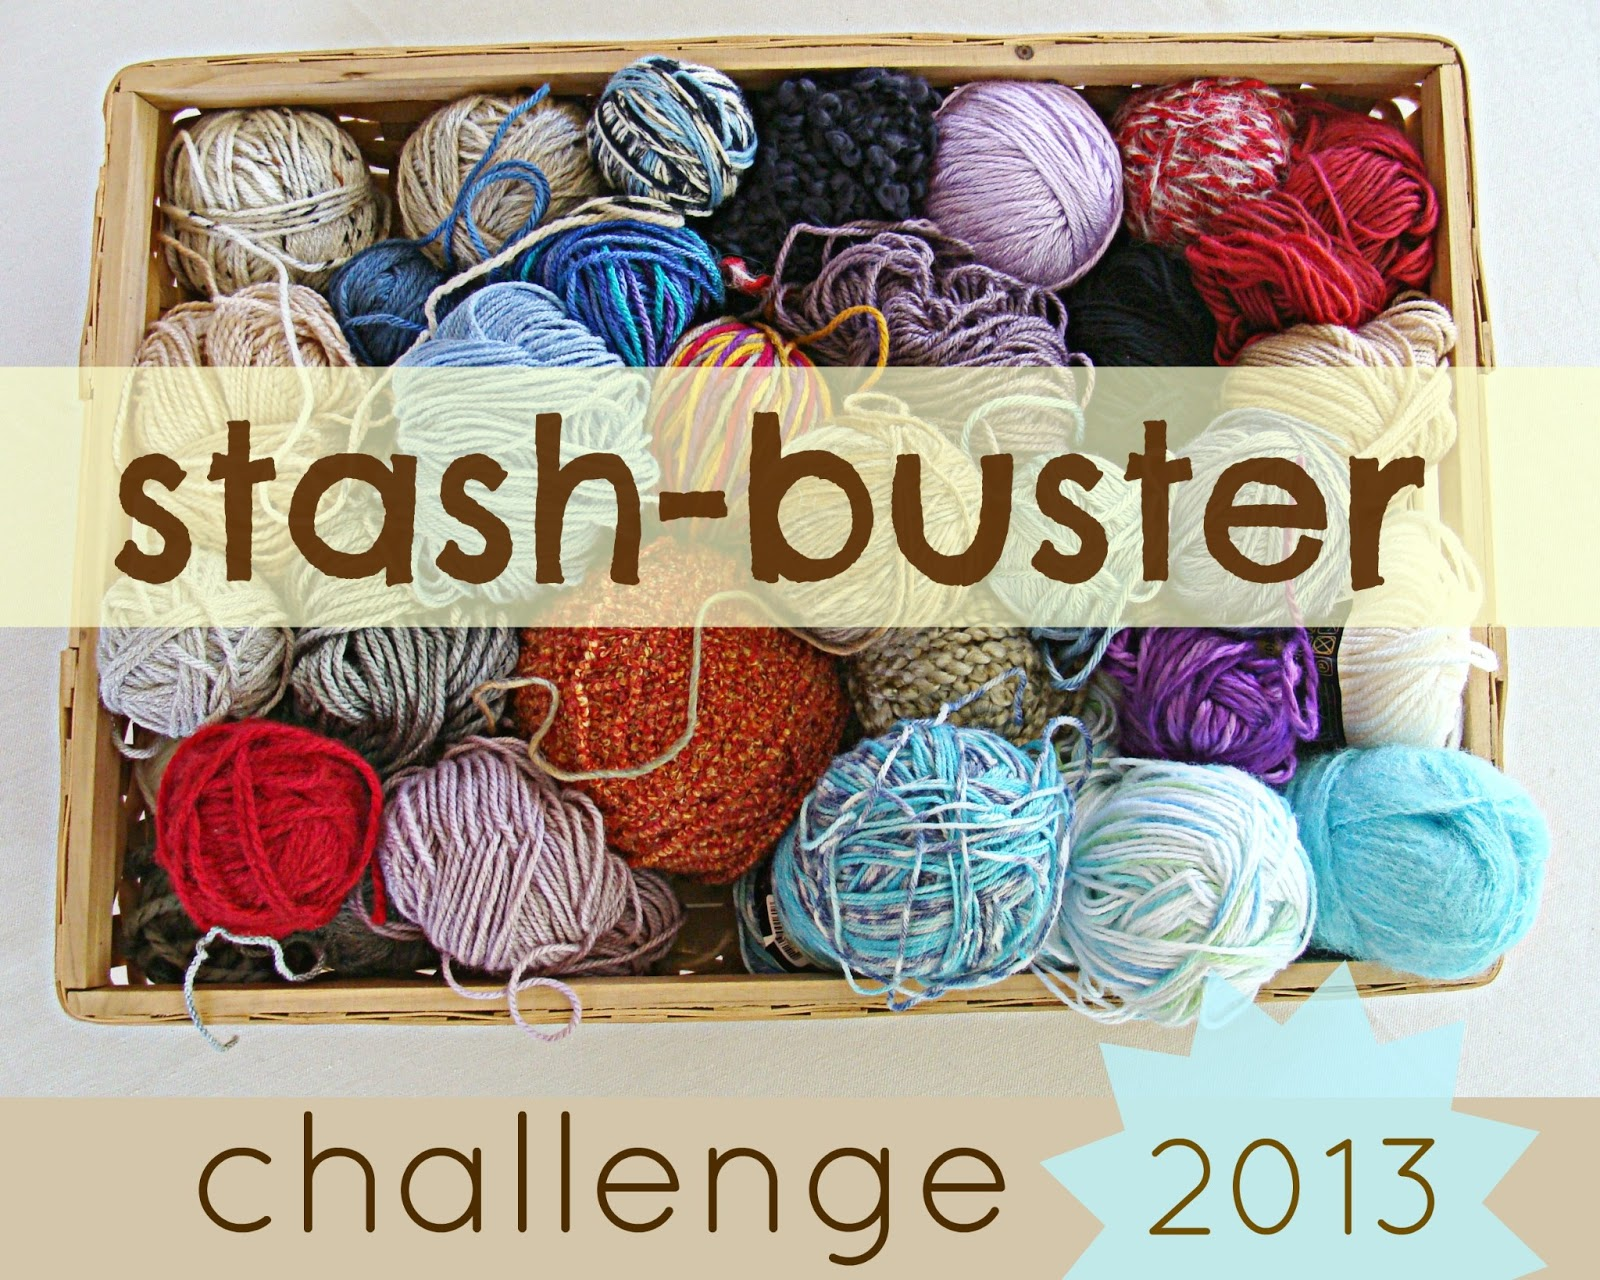 Stash-buster  Challenge 2013